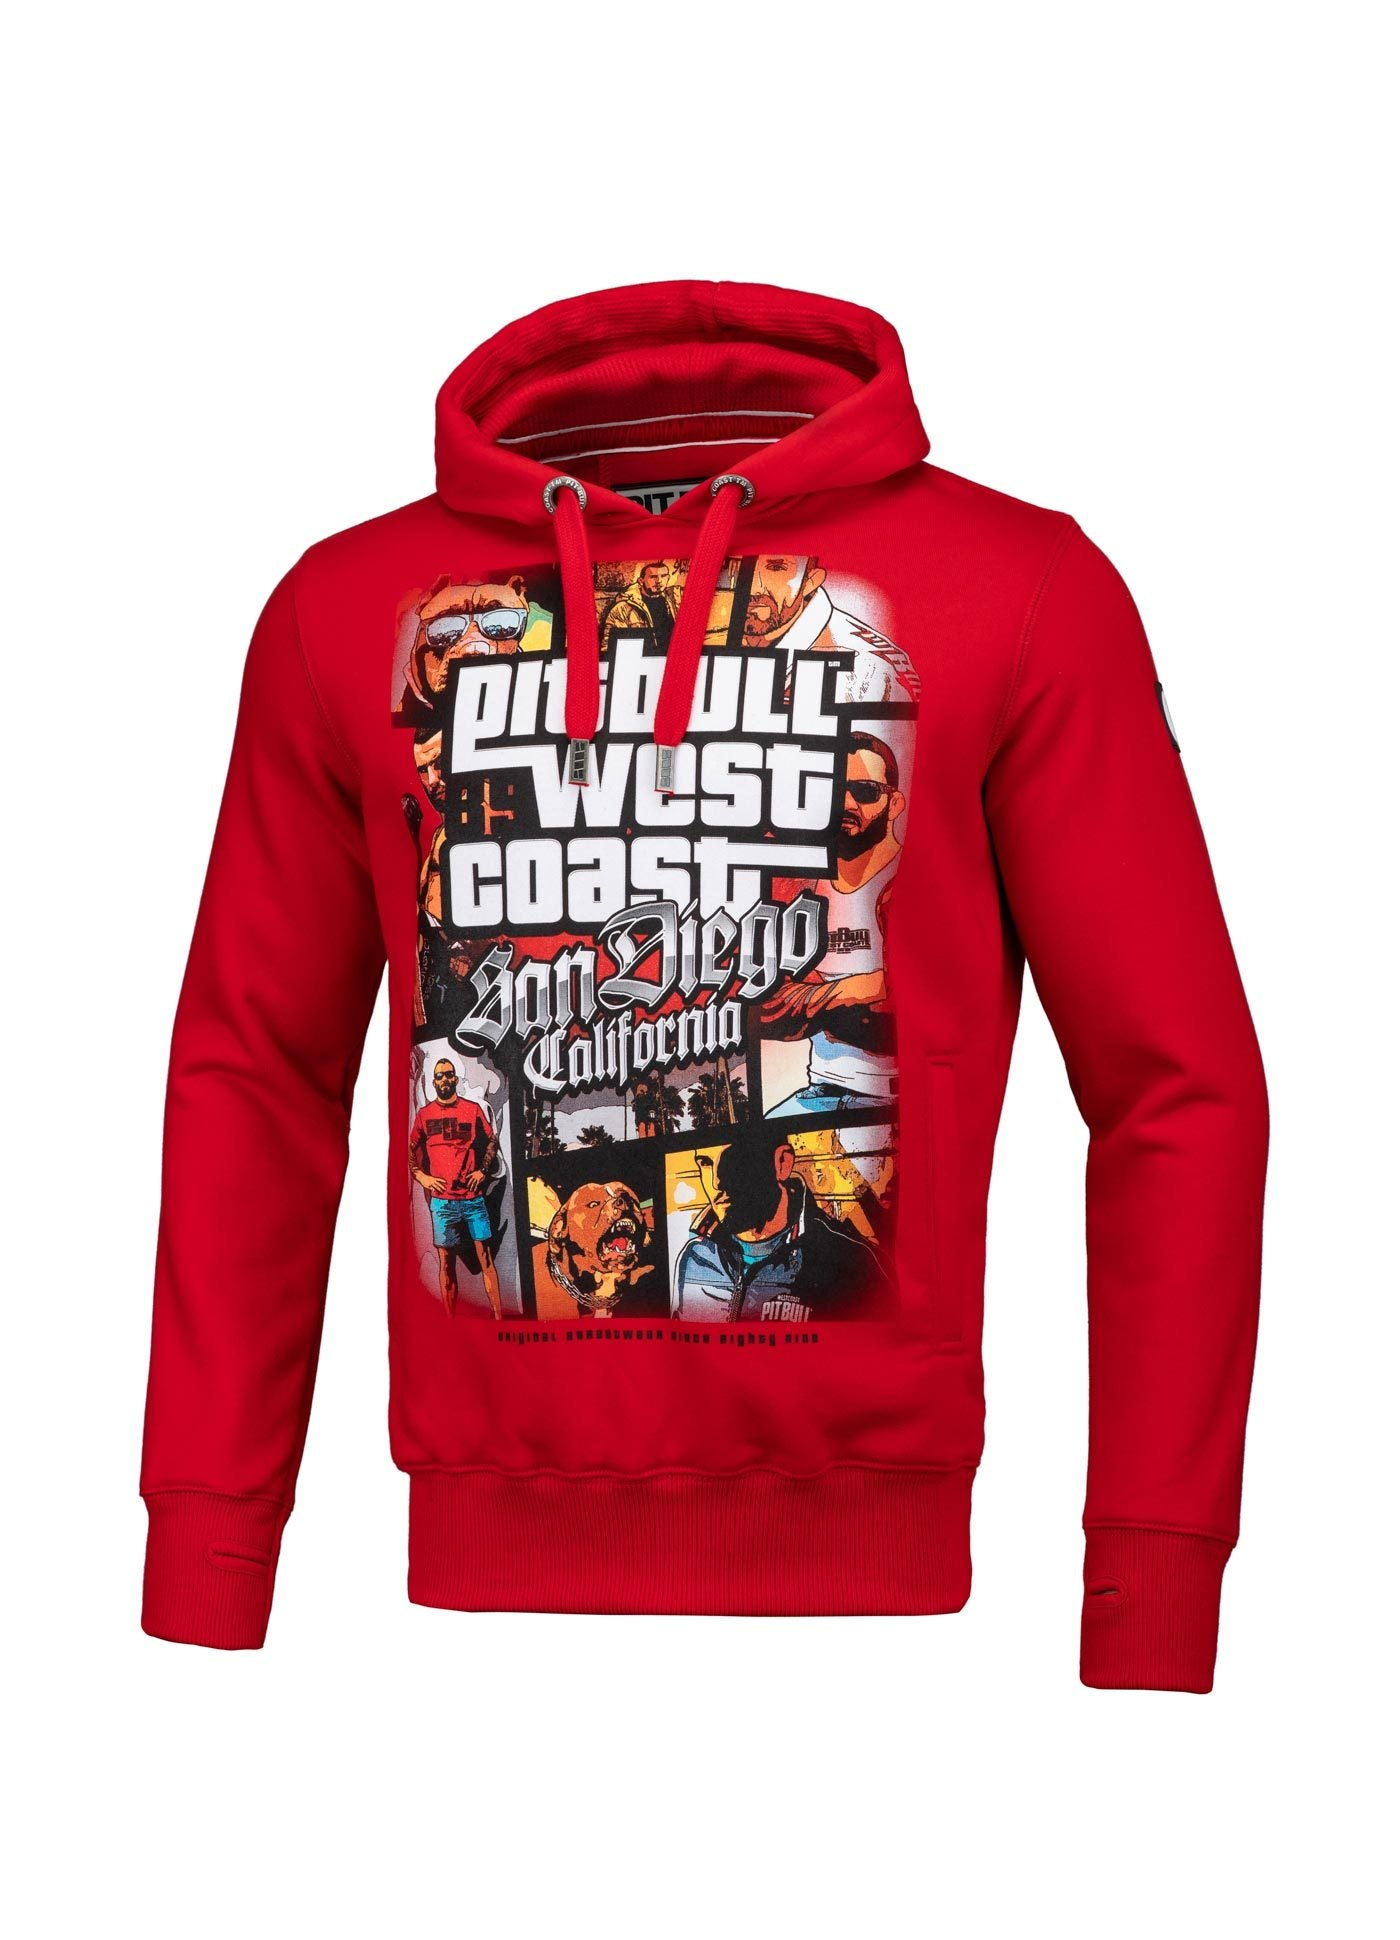 MOST WANTED HOODIE RED - pitbullwestcoast